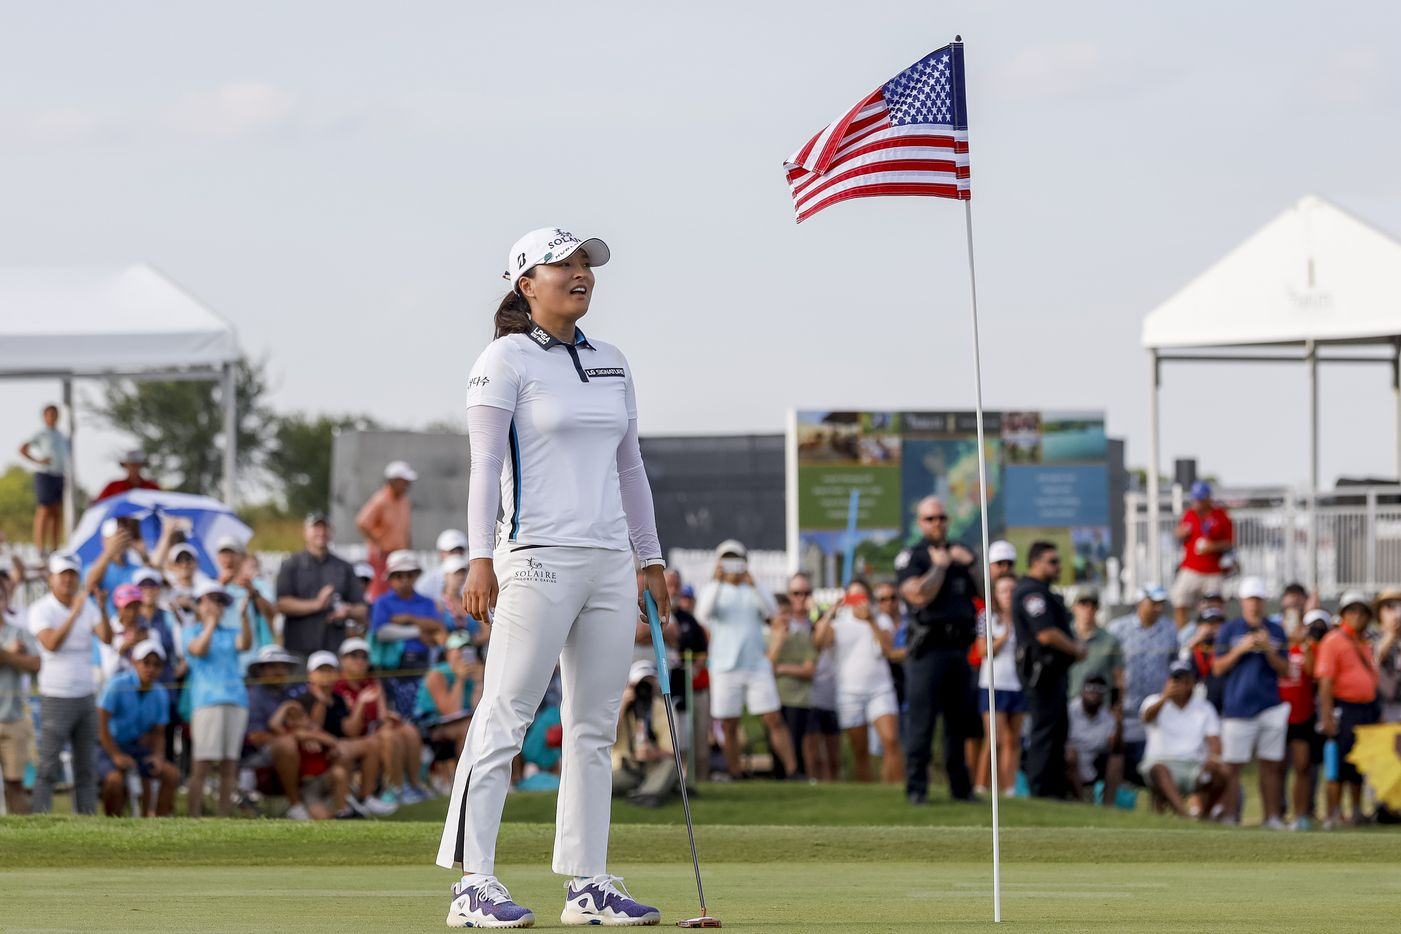 Professional golfer Jin Young Ko reacts after making the winning putt on the No. 18 green during the final round of the LPGA VOA Classic on Sunday, July 4, 2021, in The Colony, Texas. Ko won the tournament at 16 under par.  (Elias Valverde II/The Dallas Morning News)